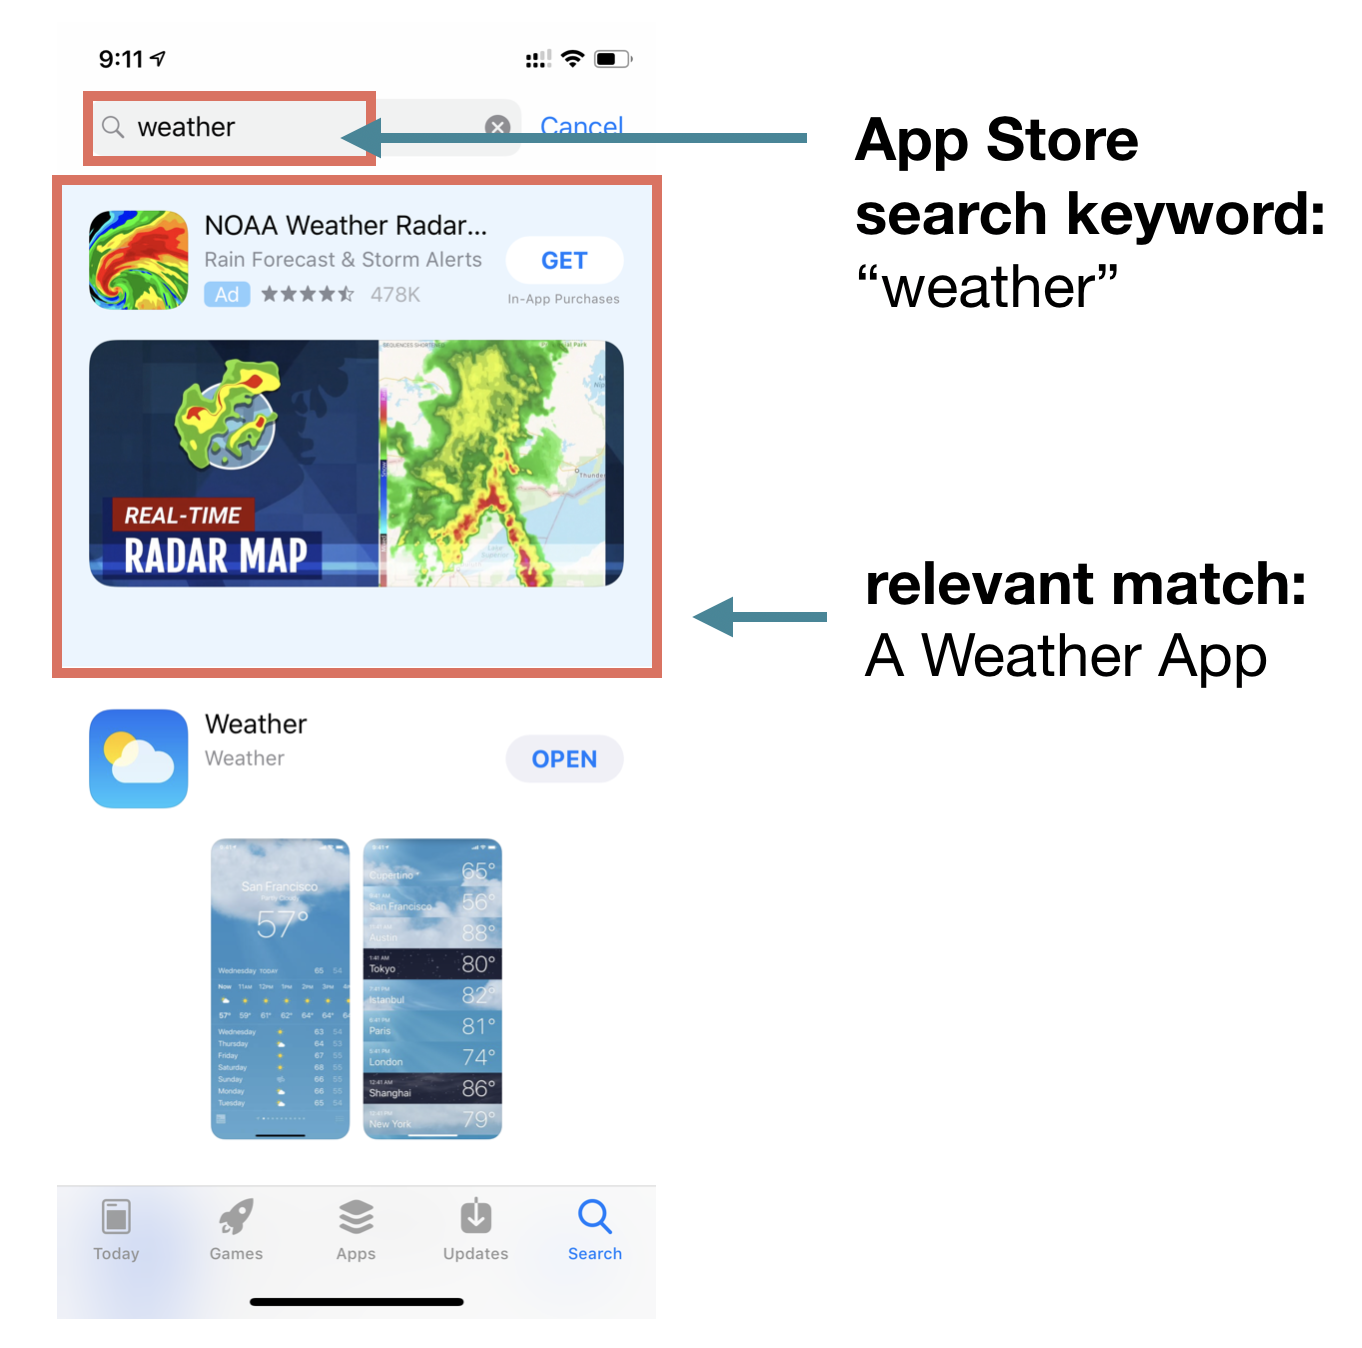 Apple's App Store Search Ads tend to surface highly relevant results based upon search keywords.